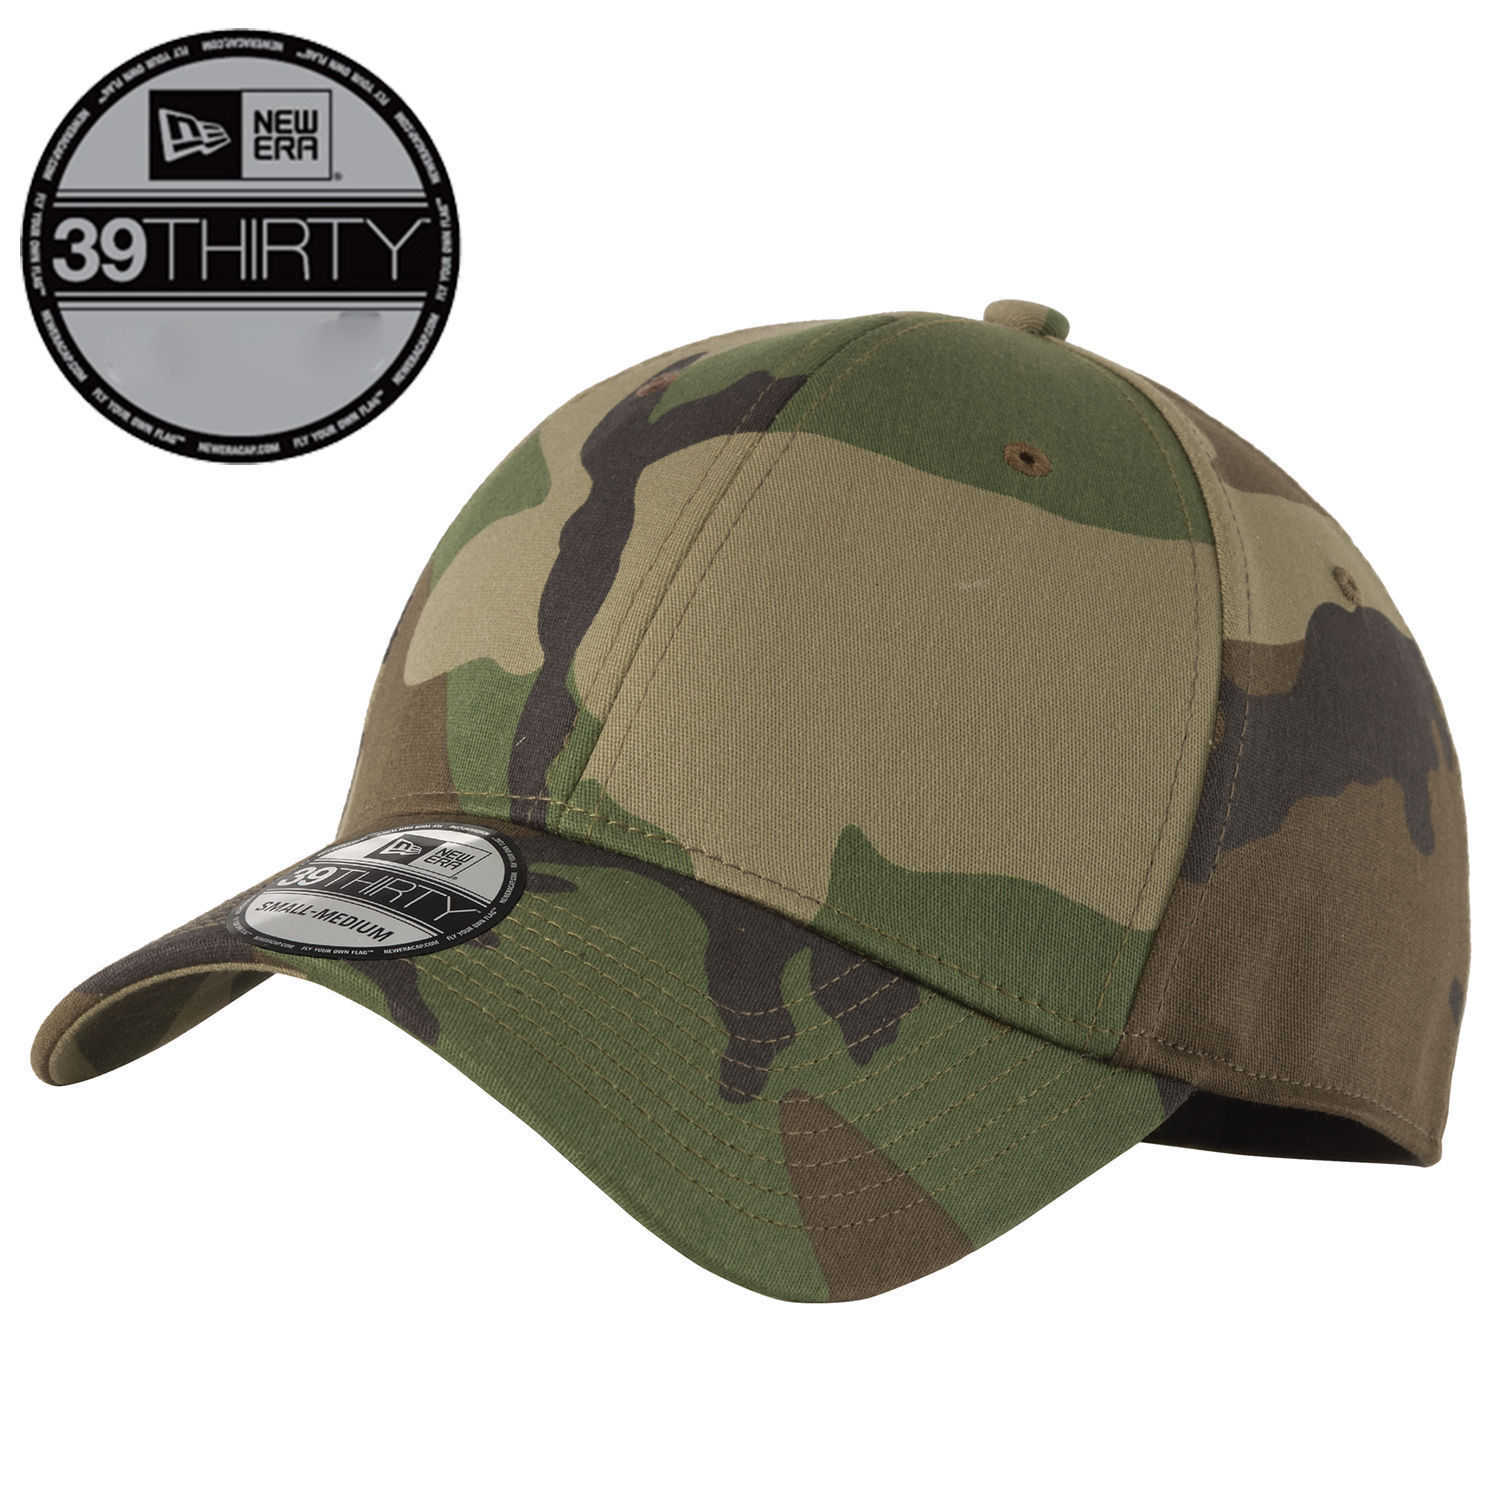 S l1600. S l1600. New Era 39Thirty Blank Stretch Cotton fitted CAMO Hat Cap  NE1000 Free Shipping b1c52670435a